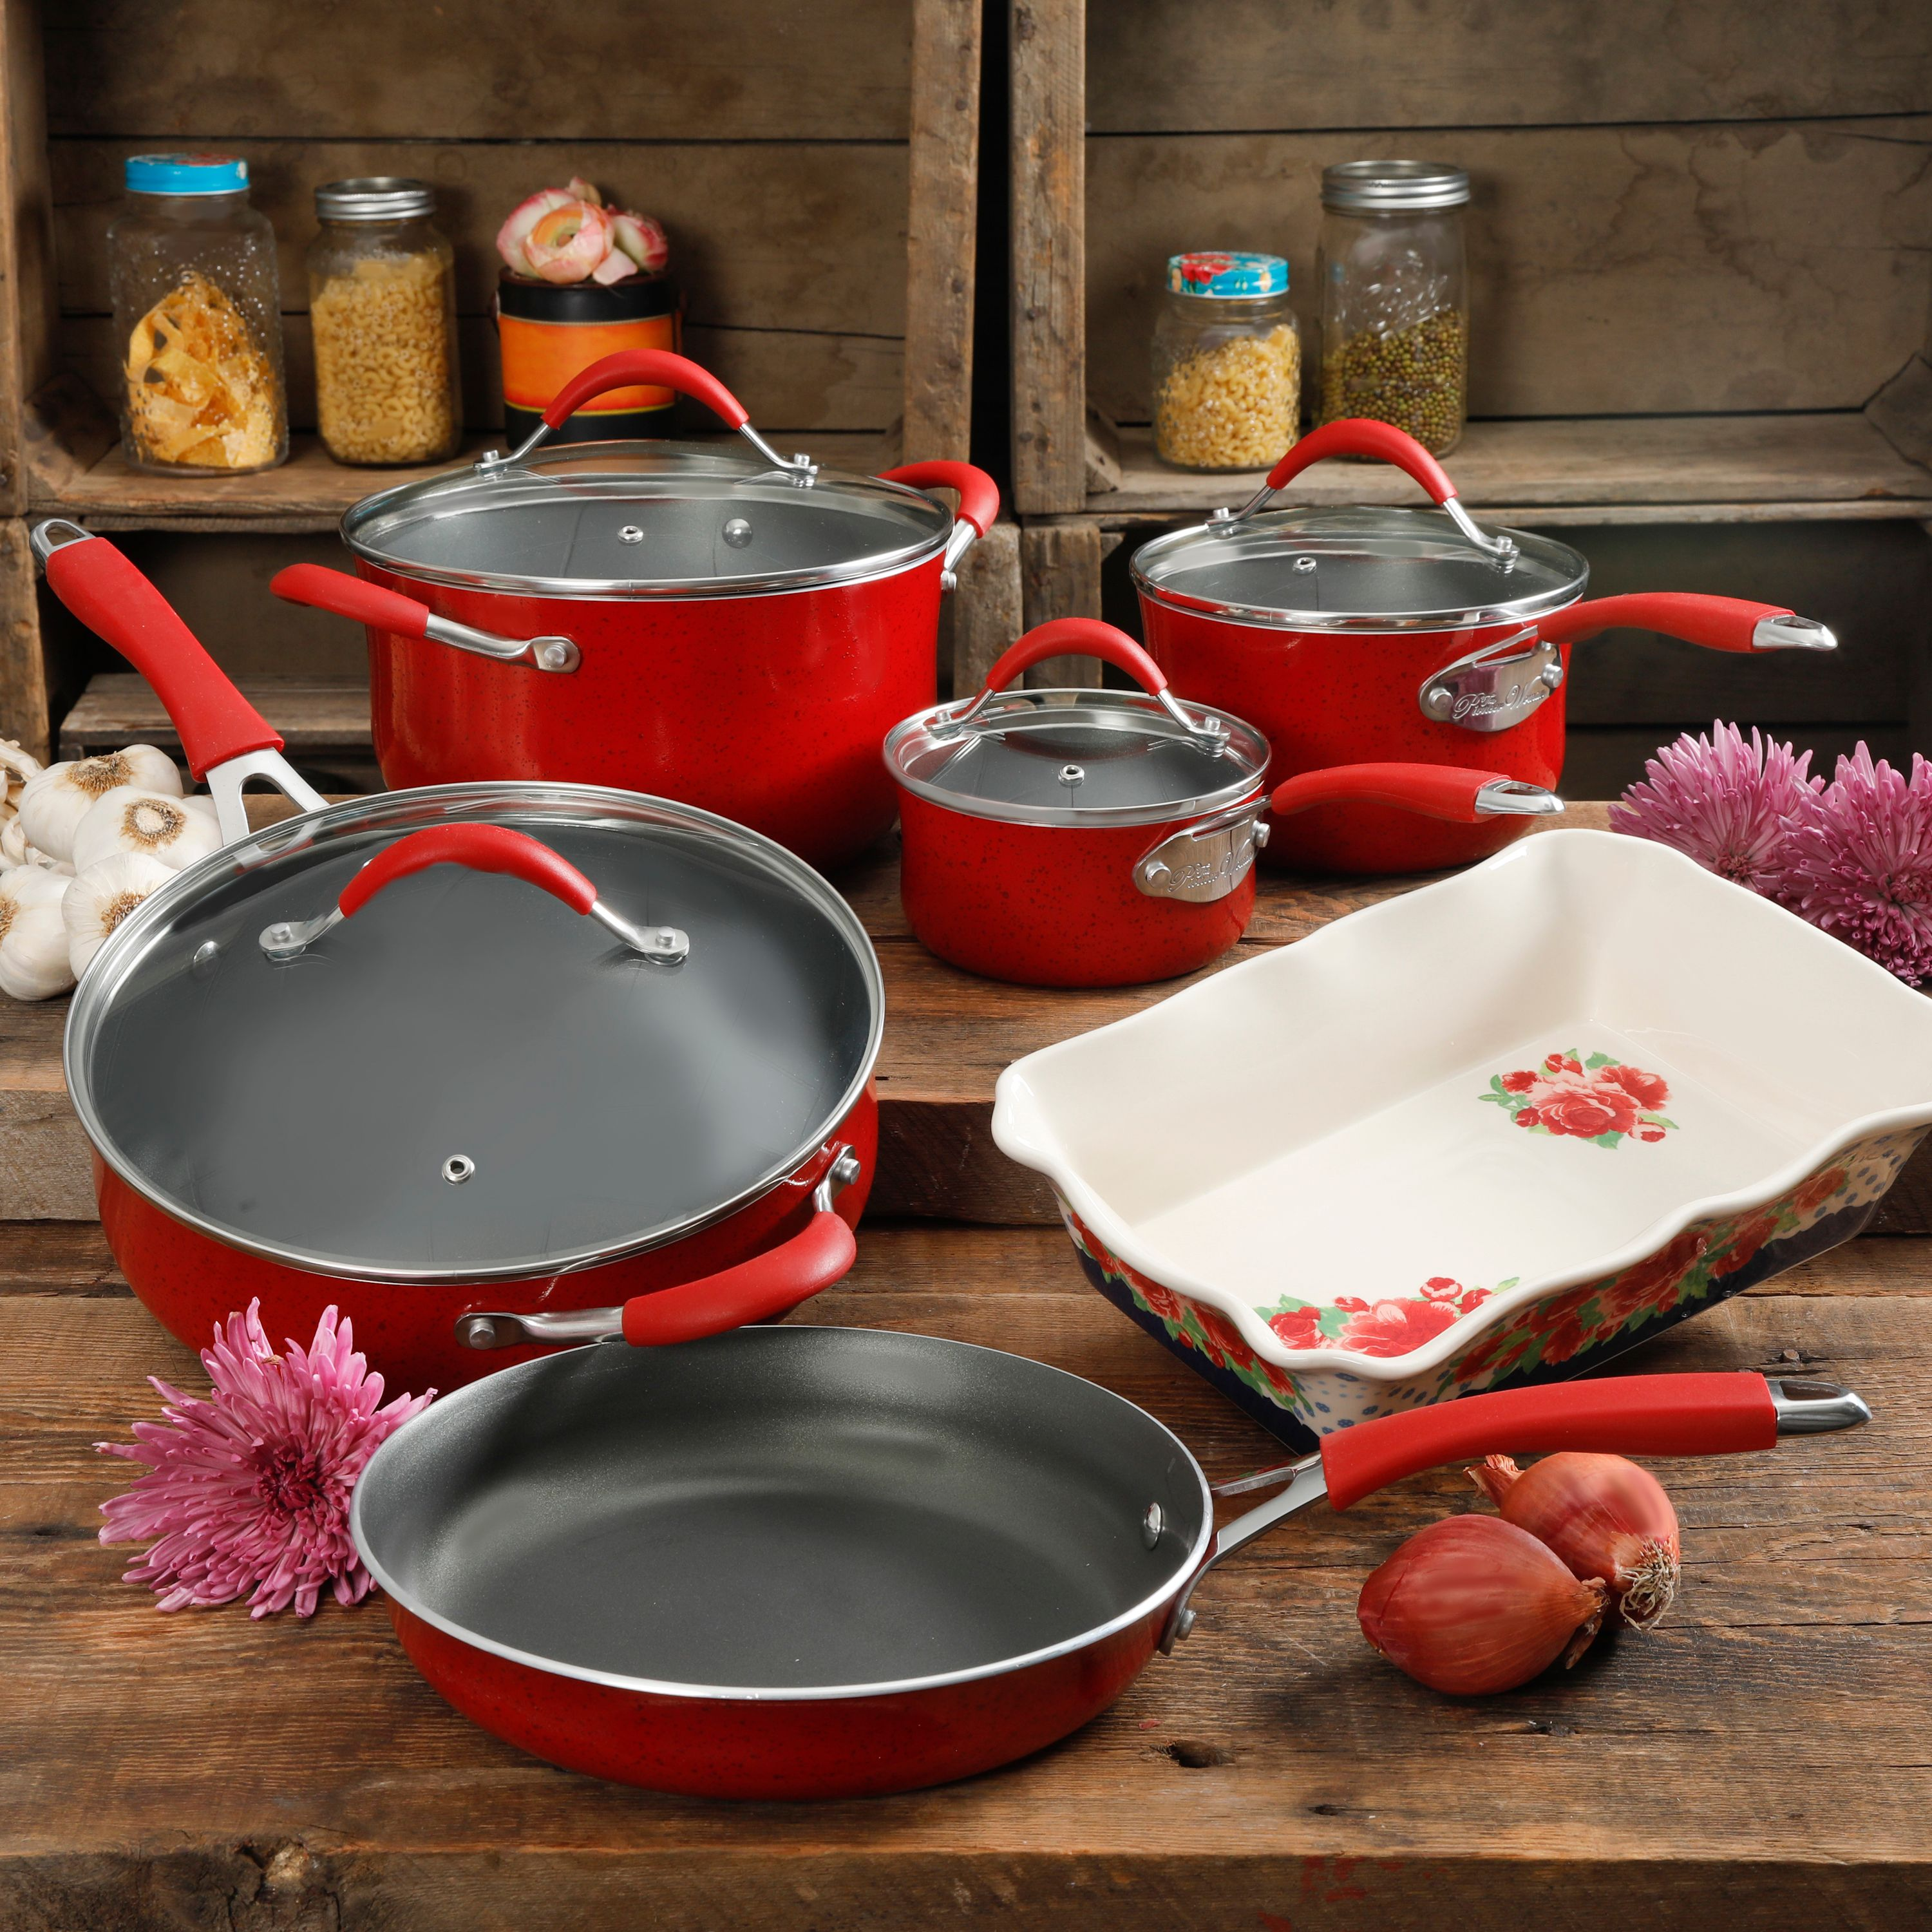 The Pioneer Woman Frontier Speckle Red 10-Piece Cookware Set